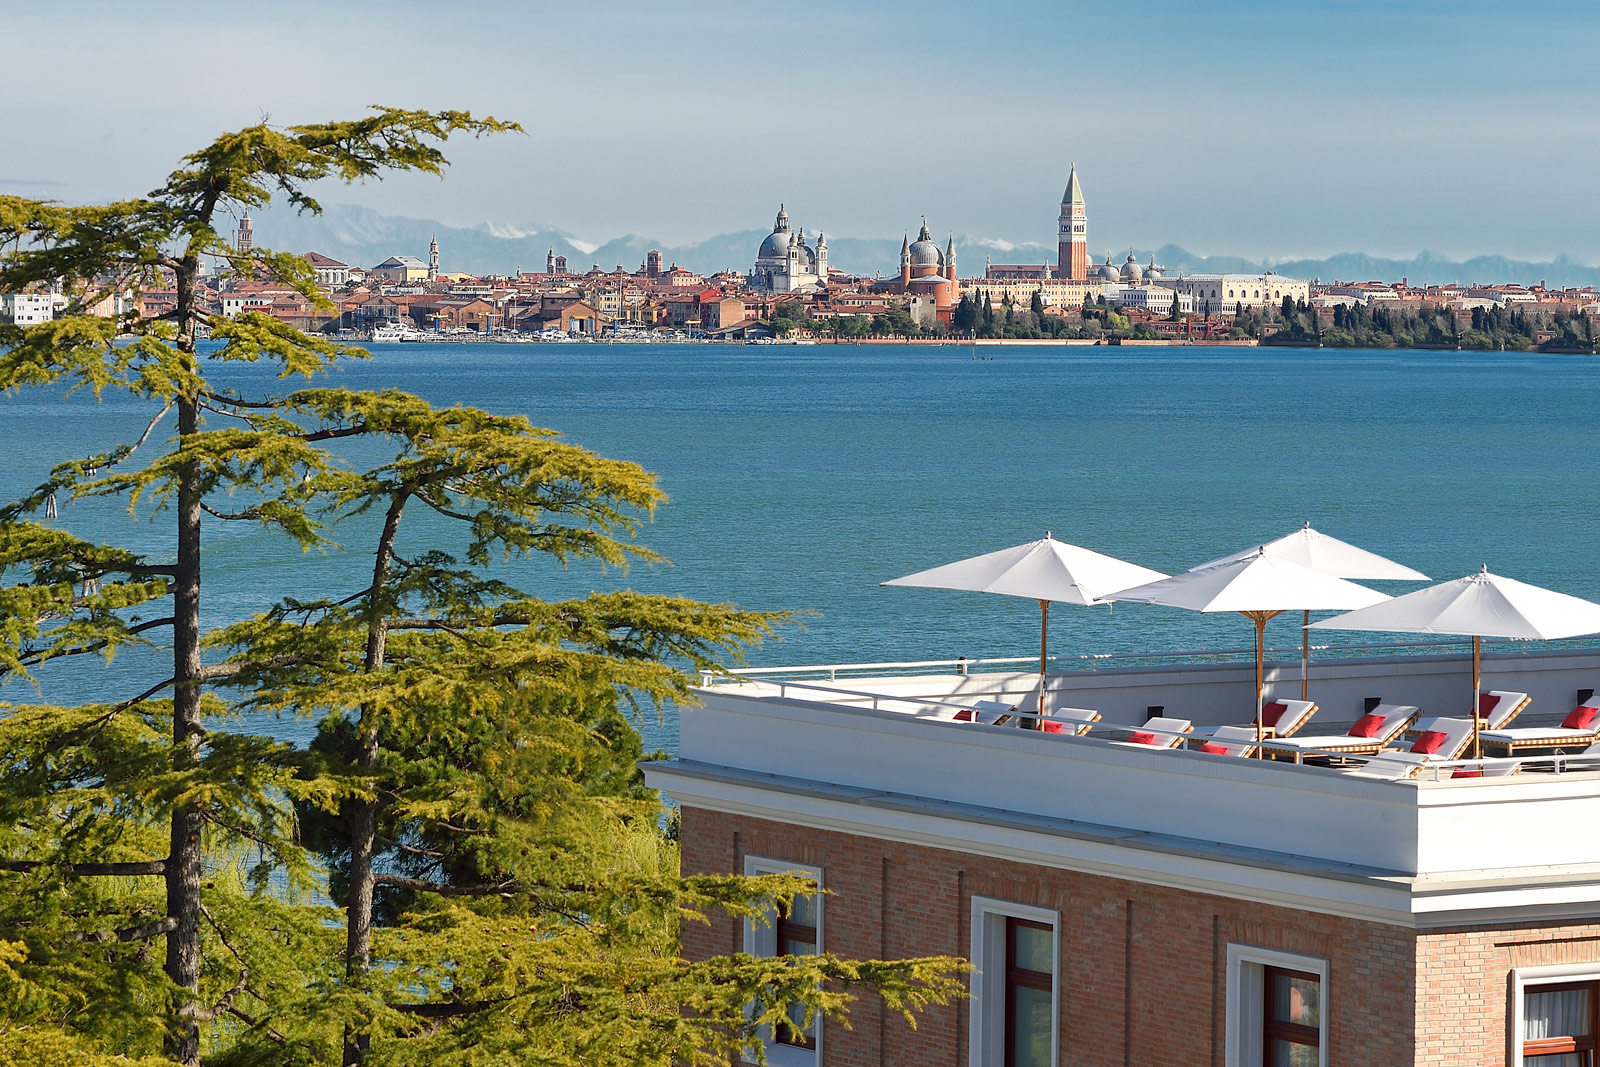 The Venetian Way Of Life At J W Marriott Venice Resort & Spa 7